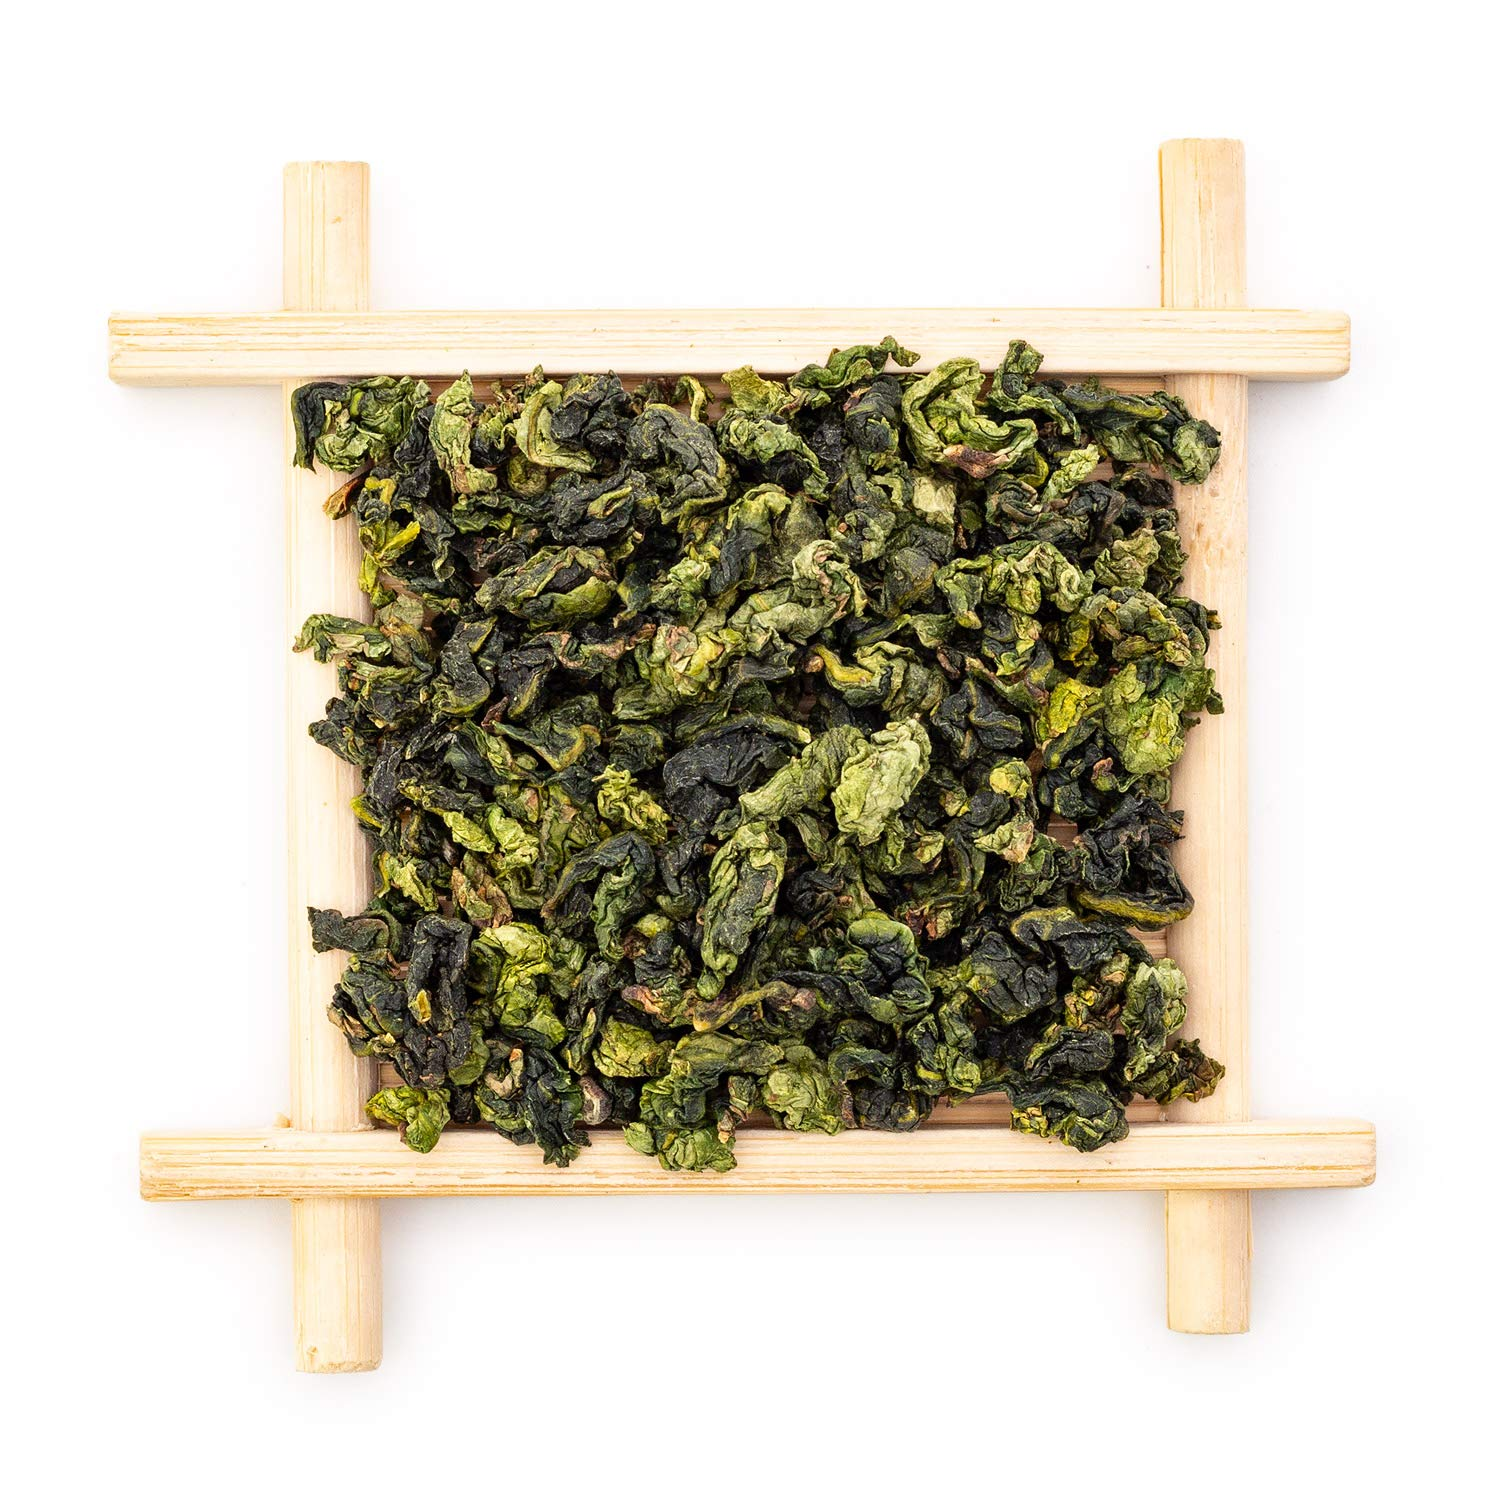 Oriarm 500g / 17.64oz Anxi Tie Guan Yin Oolong Tea Loose Leaf - Chinese Iron Goddess of Mercy Oolong Green Tea Leaves - Naturally High Mountain Grown